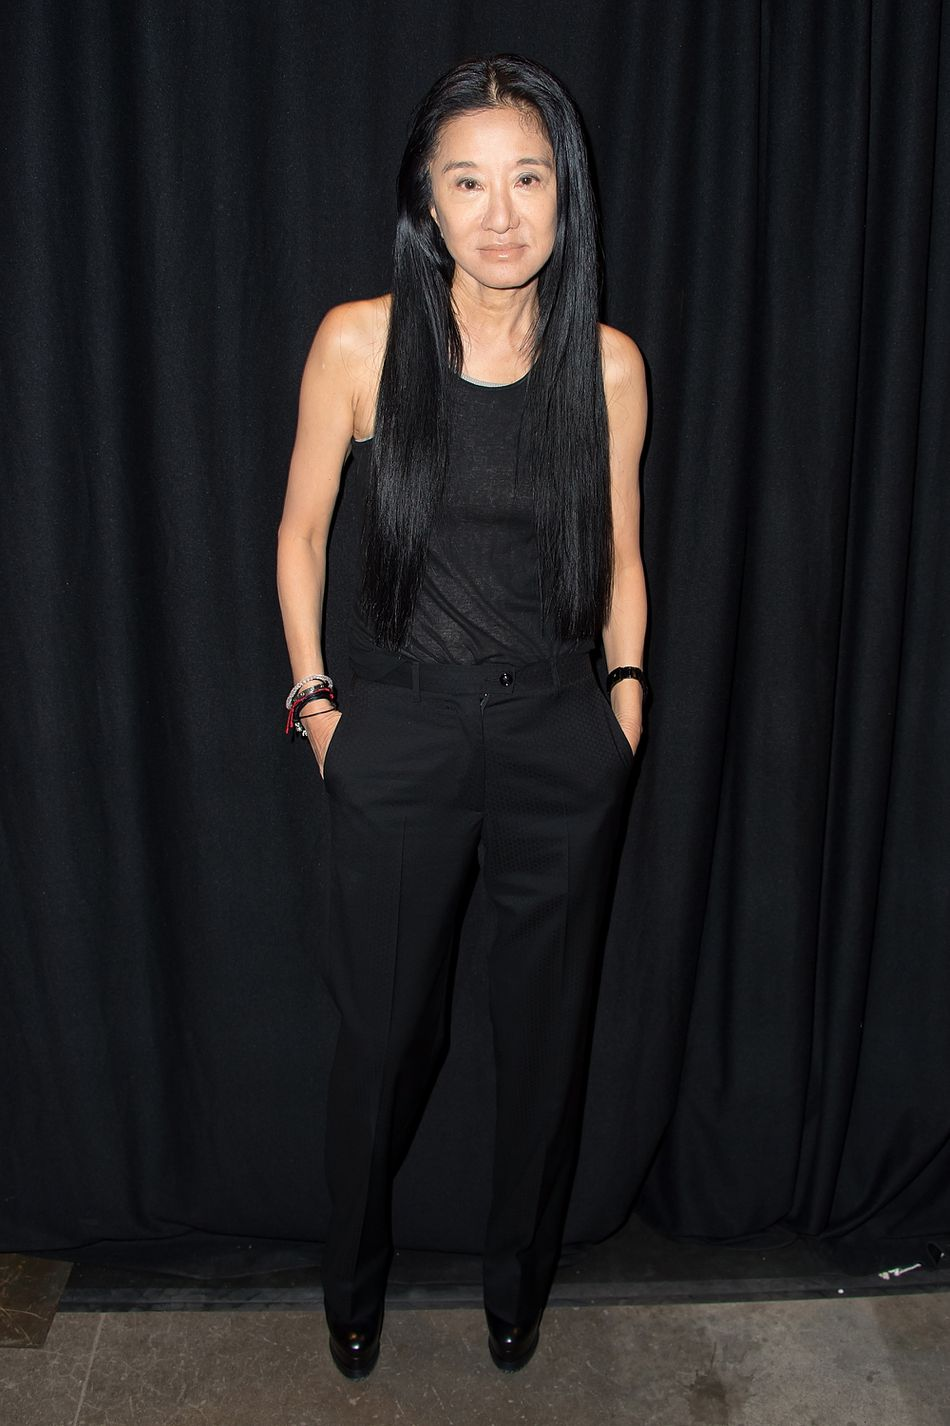 Vera Wang doesn't think her designs are iconic